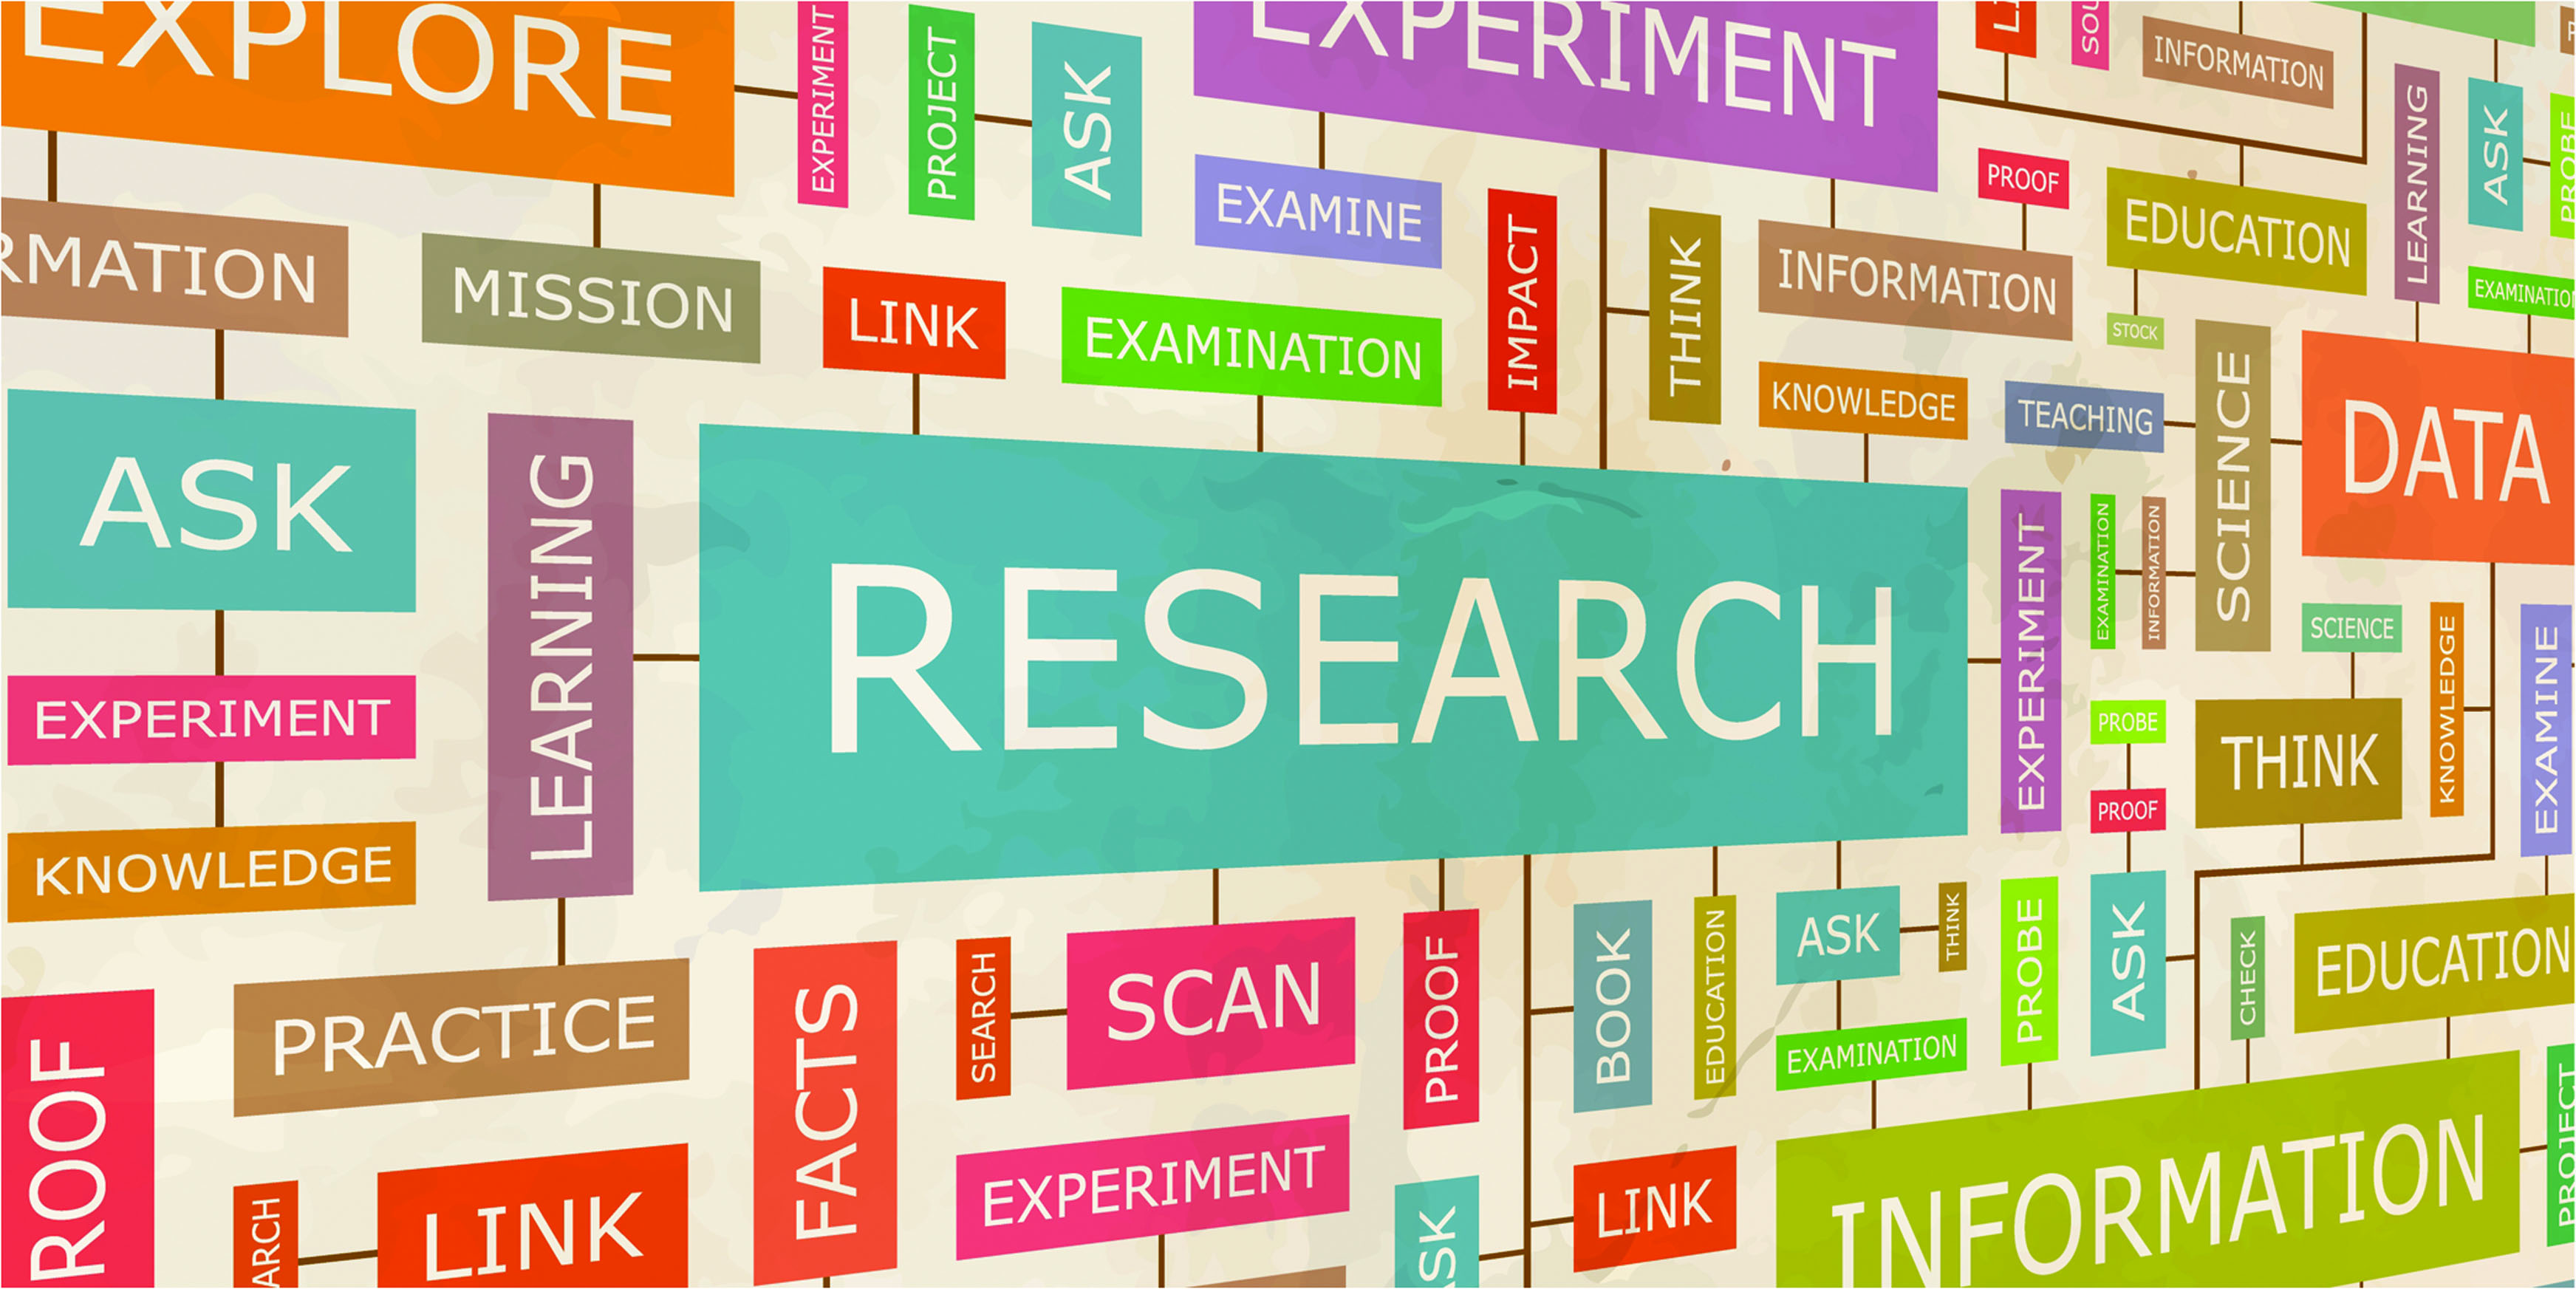 Introduce some research/project of Institute for Community Health Research (updating...)